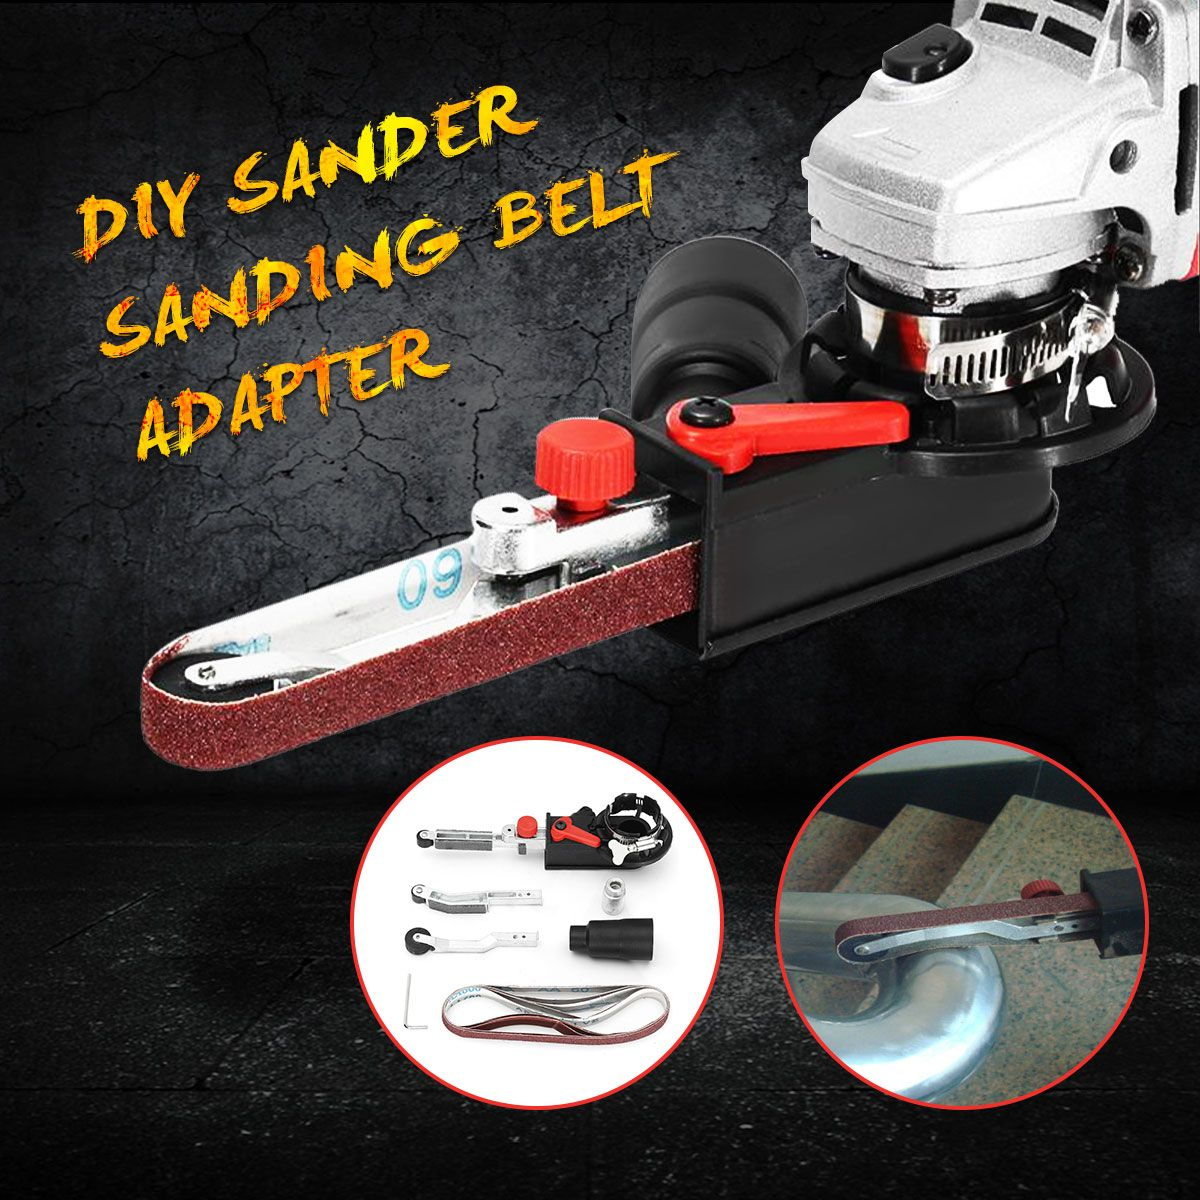 DIY Sander Sanding Belt Adapter For 115/125 Electric <font><b>Angle</b></font> Grinder with M14 Thread Spindle For woodworking Metalworking